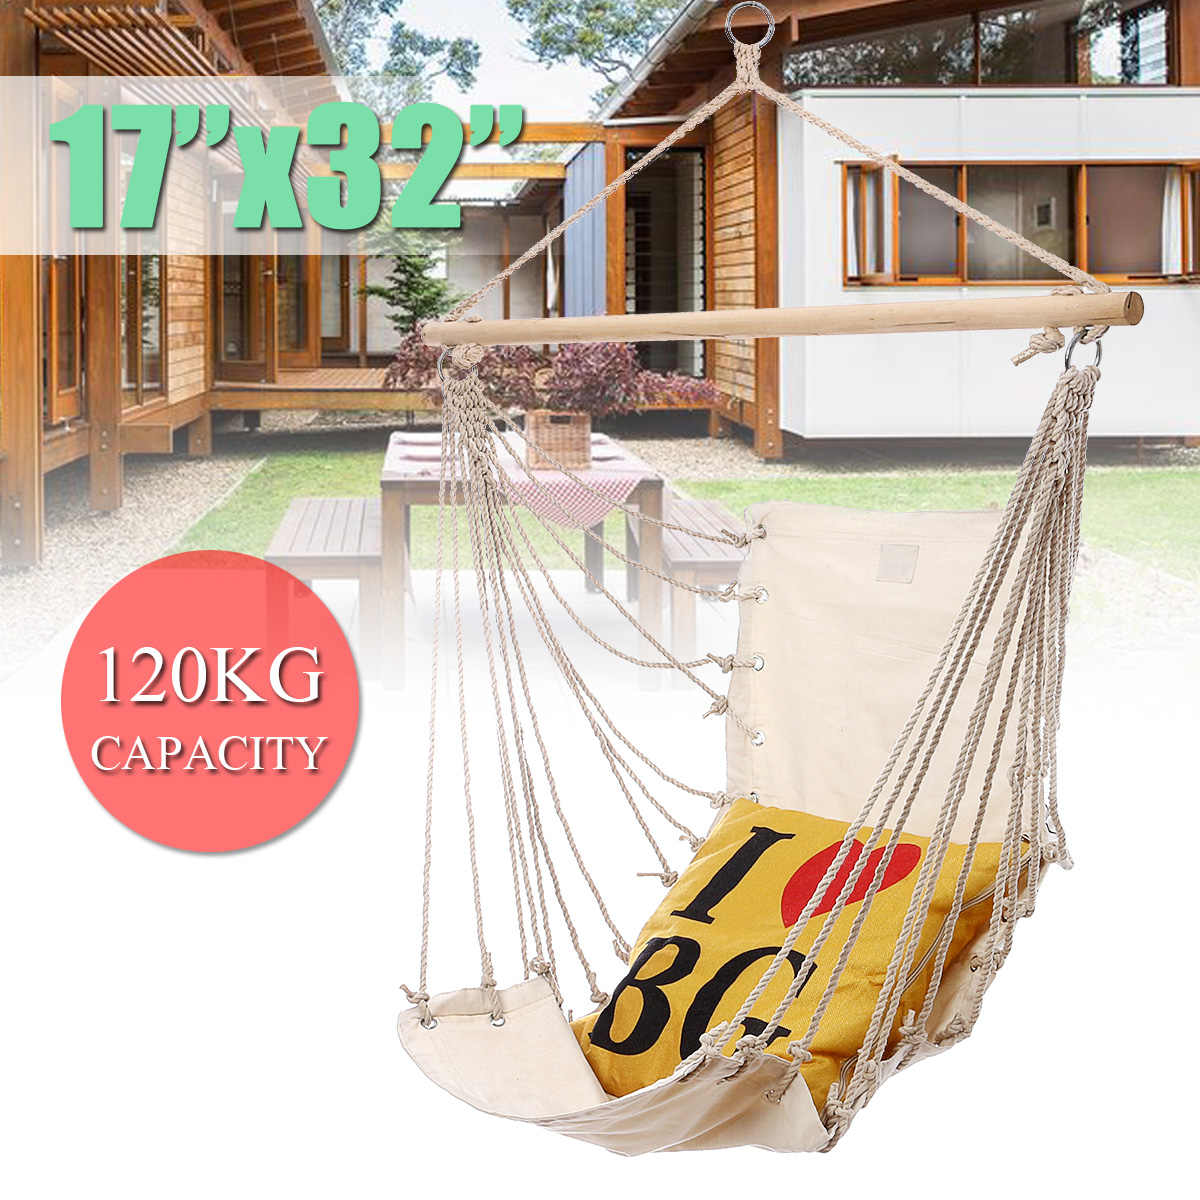 Swinging Chair Outdoor Canvas Nordic Style Hammock Chair Outdoor Indoor Garden Dormitory Bedroom Swinging Hanging Chair For Adult Single Safety Chair